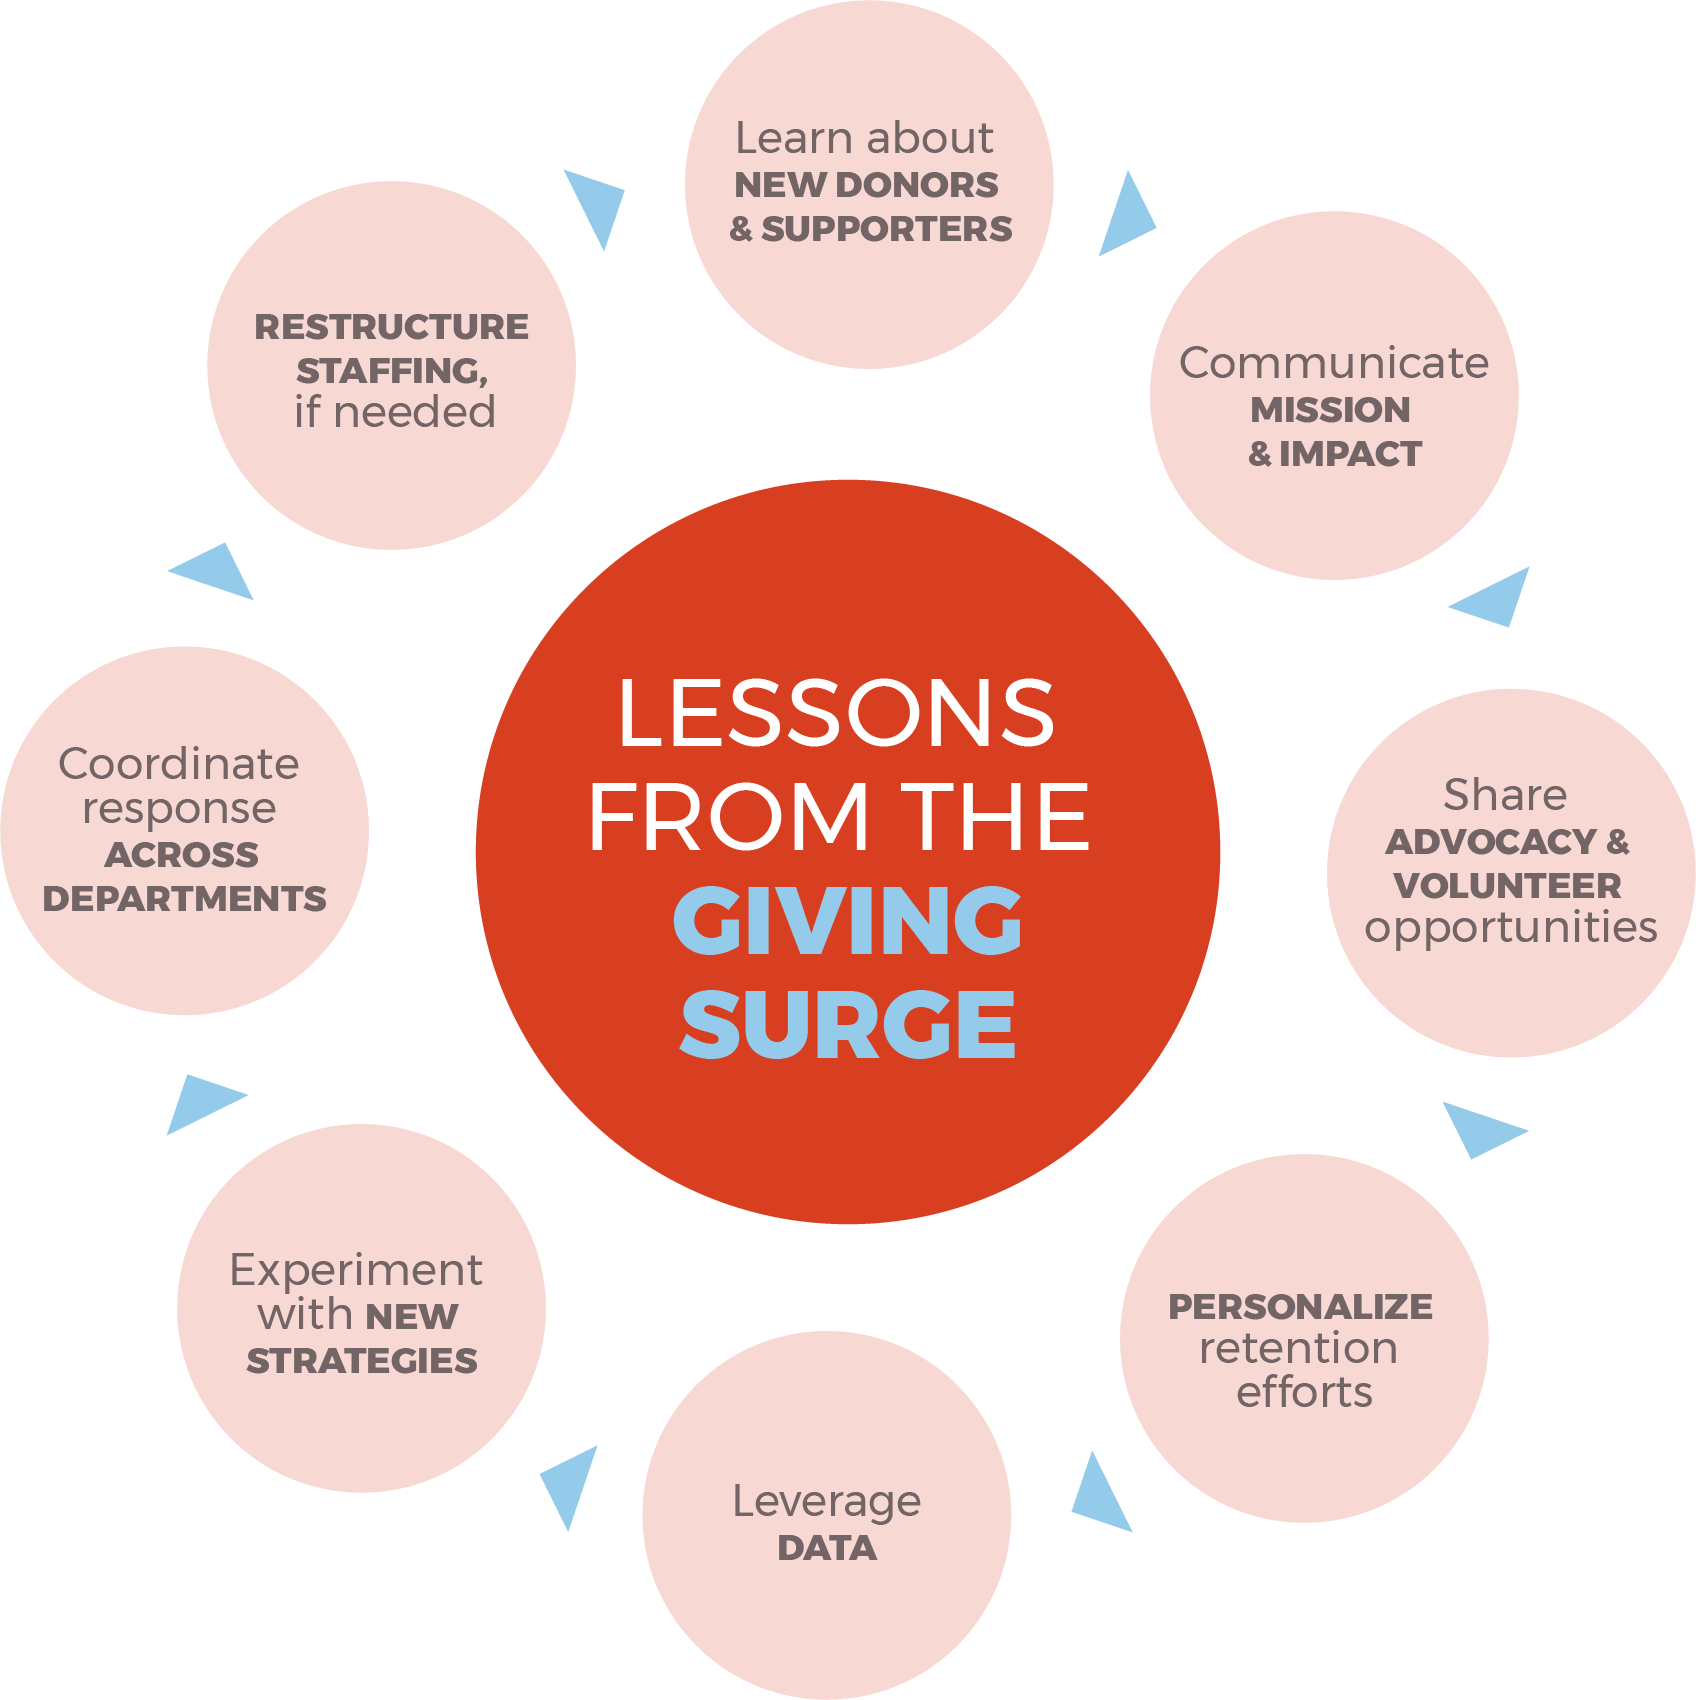 Giving_Surge_Infographic.png